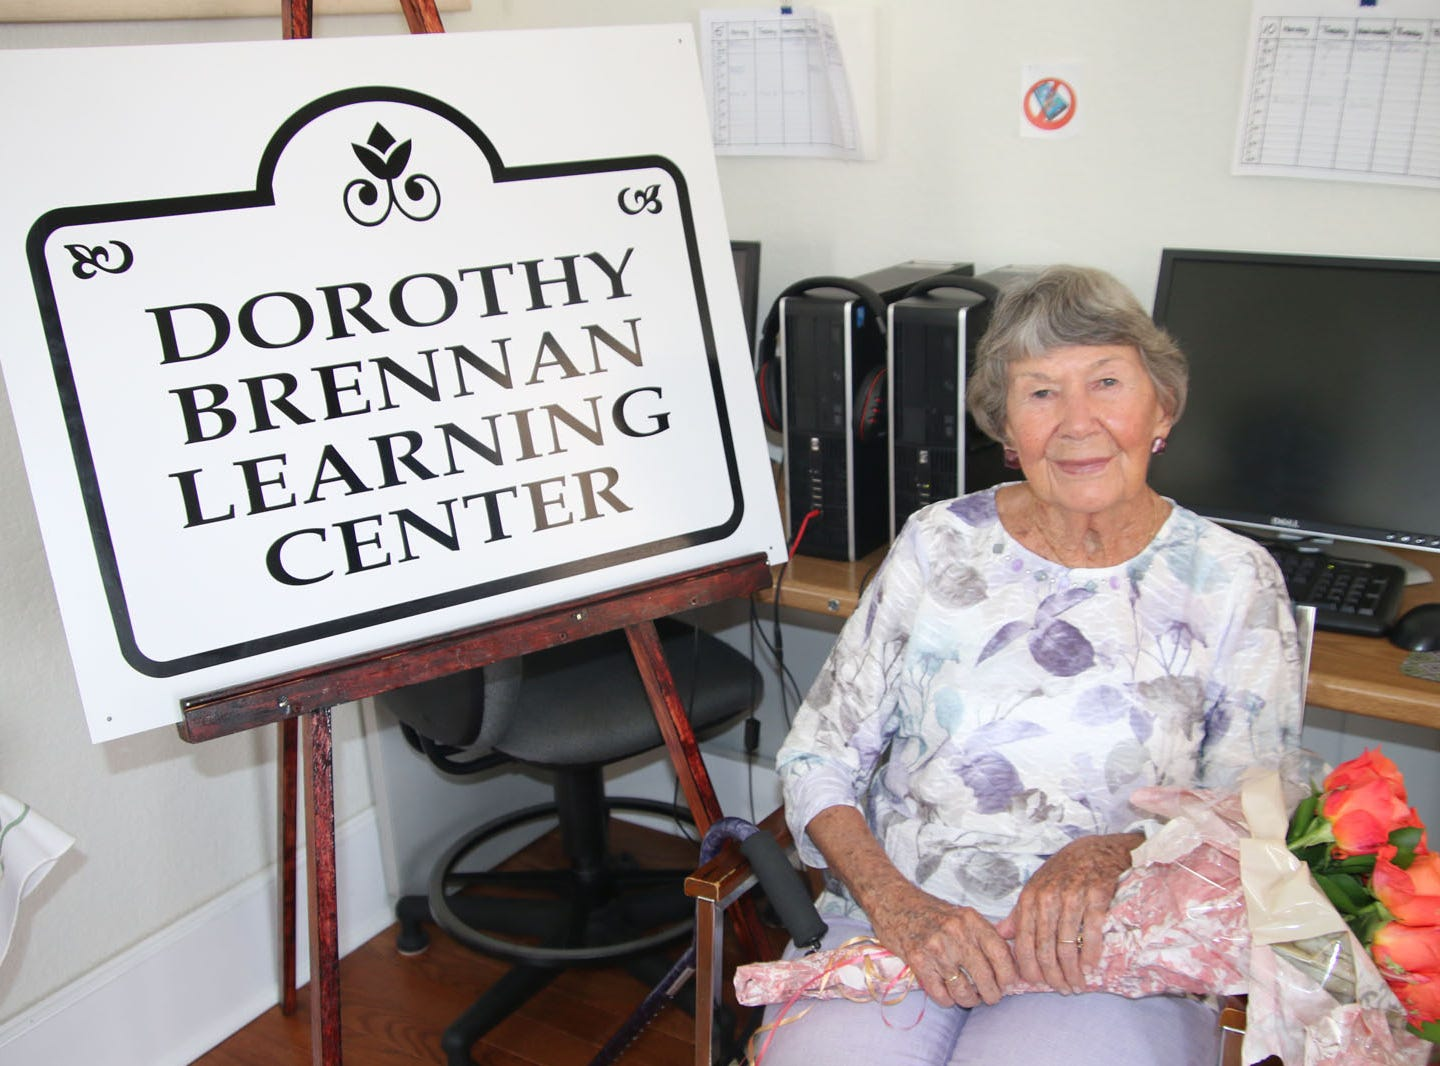 Nearly 30 years ago, Fort Pierce resident Dorothy Brennan created Learn to Read St. Lucie County, a nonprofit organization dedicated to providing free literacy services. Thousands of students later, Learn to Read honored Brennan by naming its new facility in downtown Fort Pierce the Dorothy Brennan Learning Center.